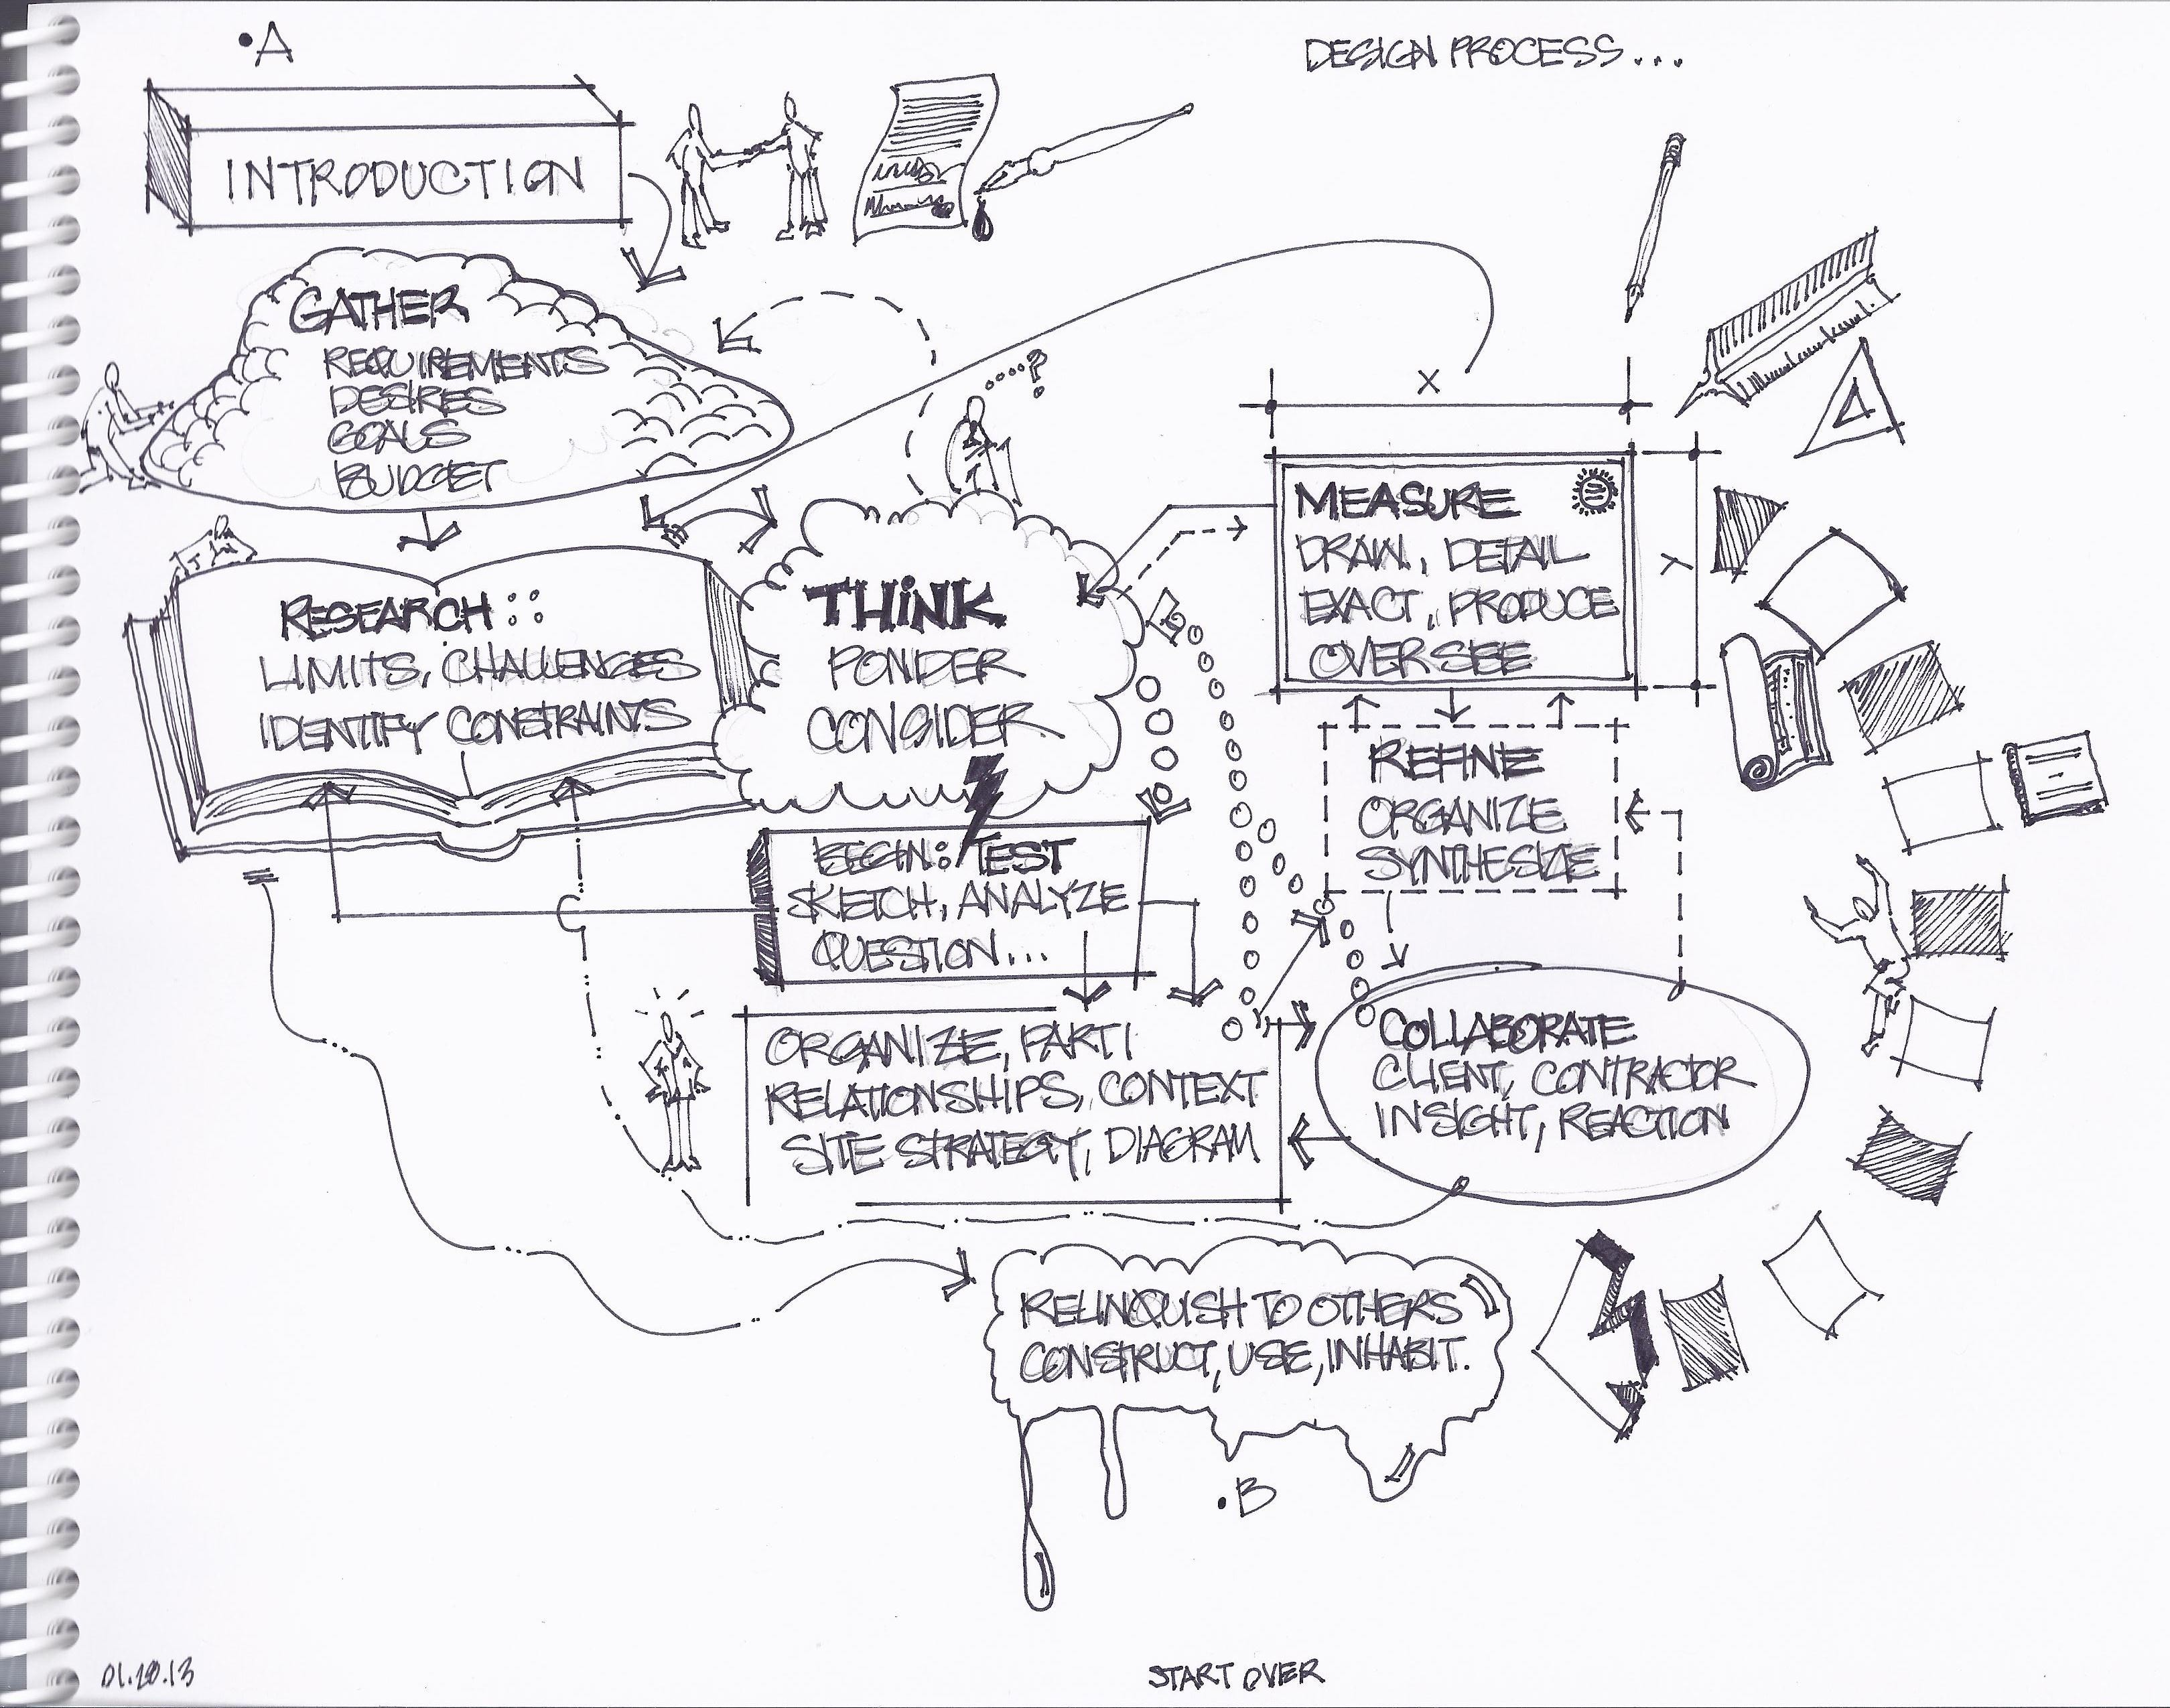 Engineering Design Process Diagram Architectural Design Process Google Search Kevin Lynch S Process Of Engineering Design Process Diagram